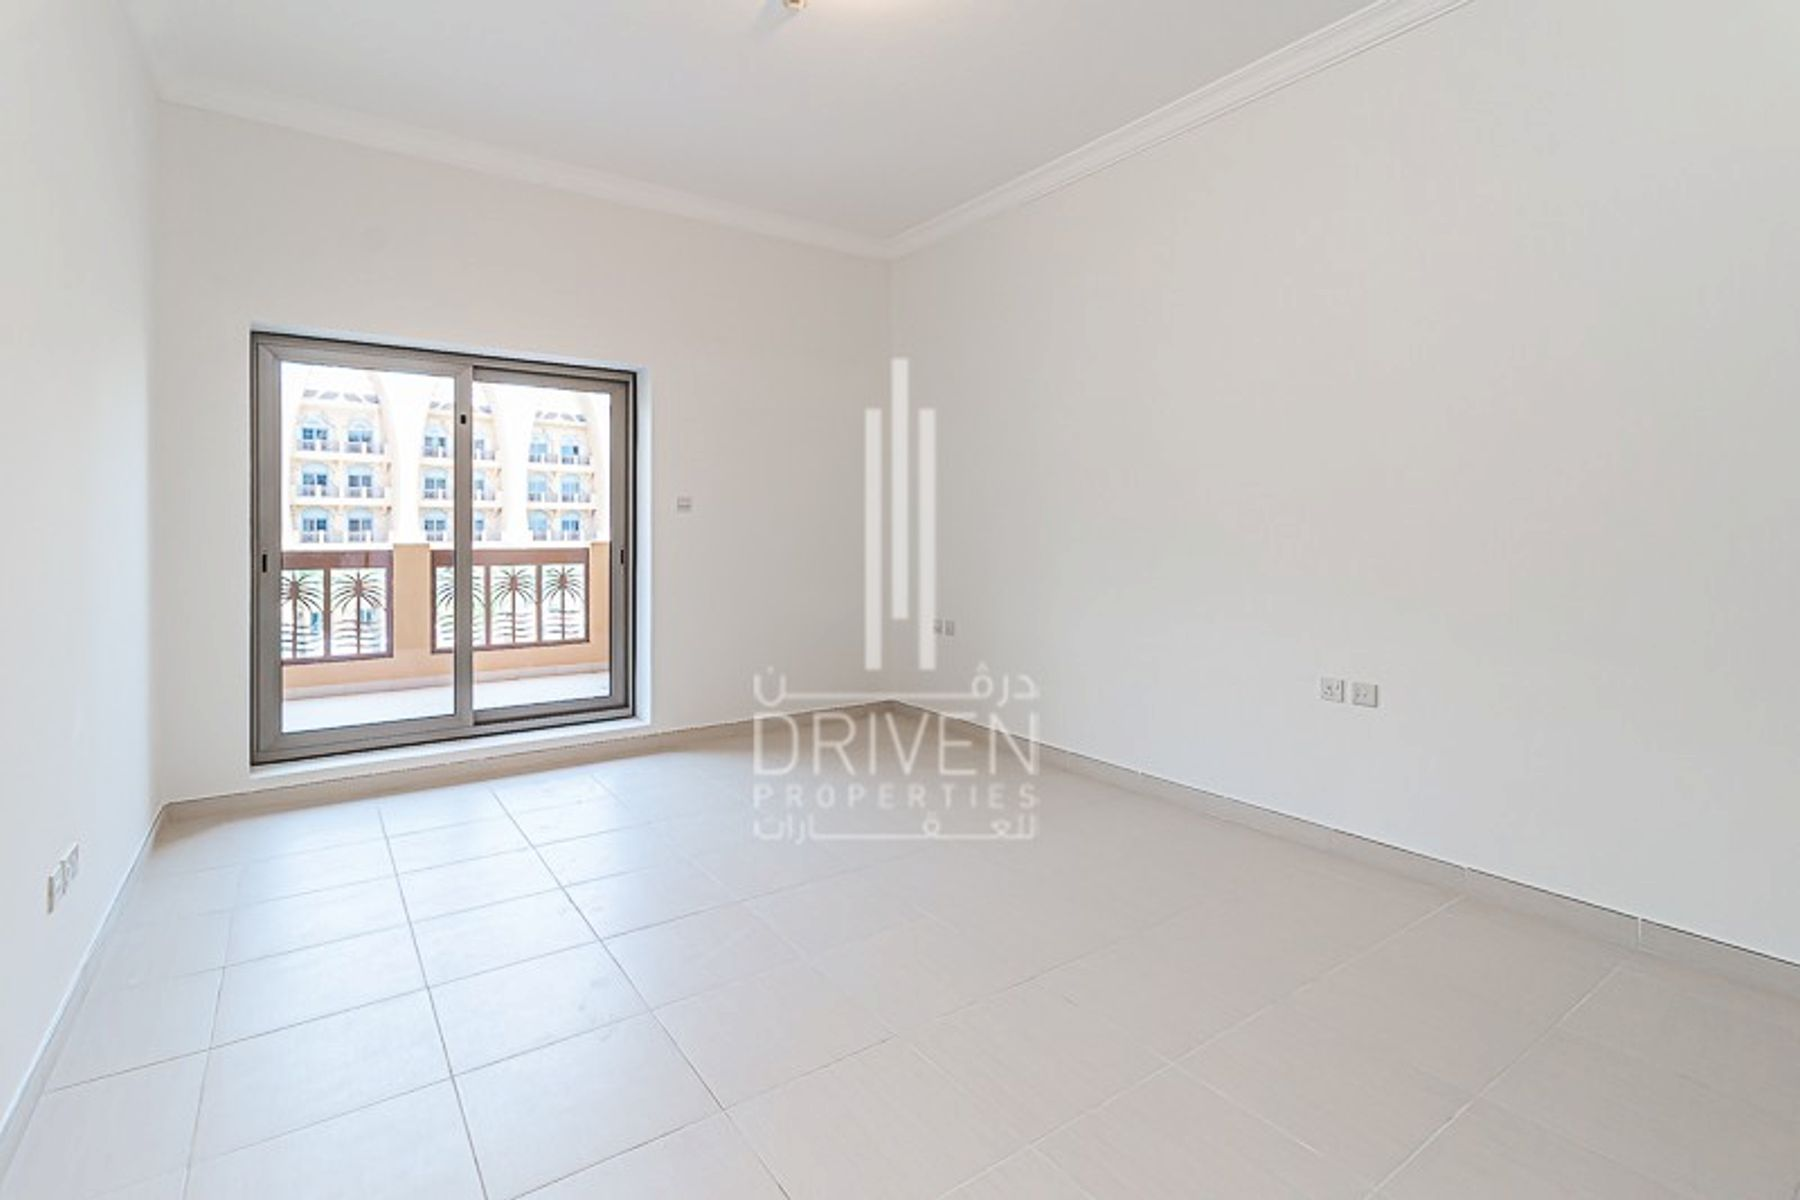 Spacious 1 Bedroom Apt with 1 Month Free